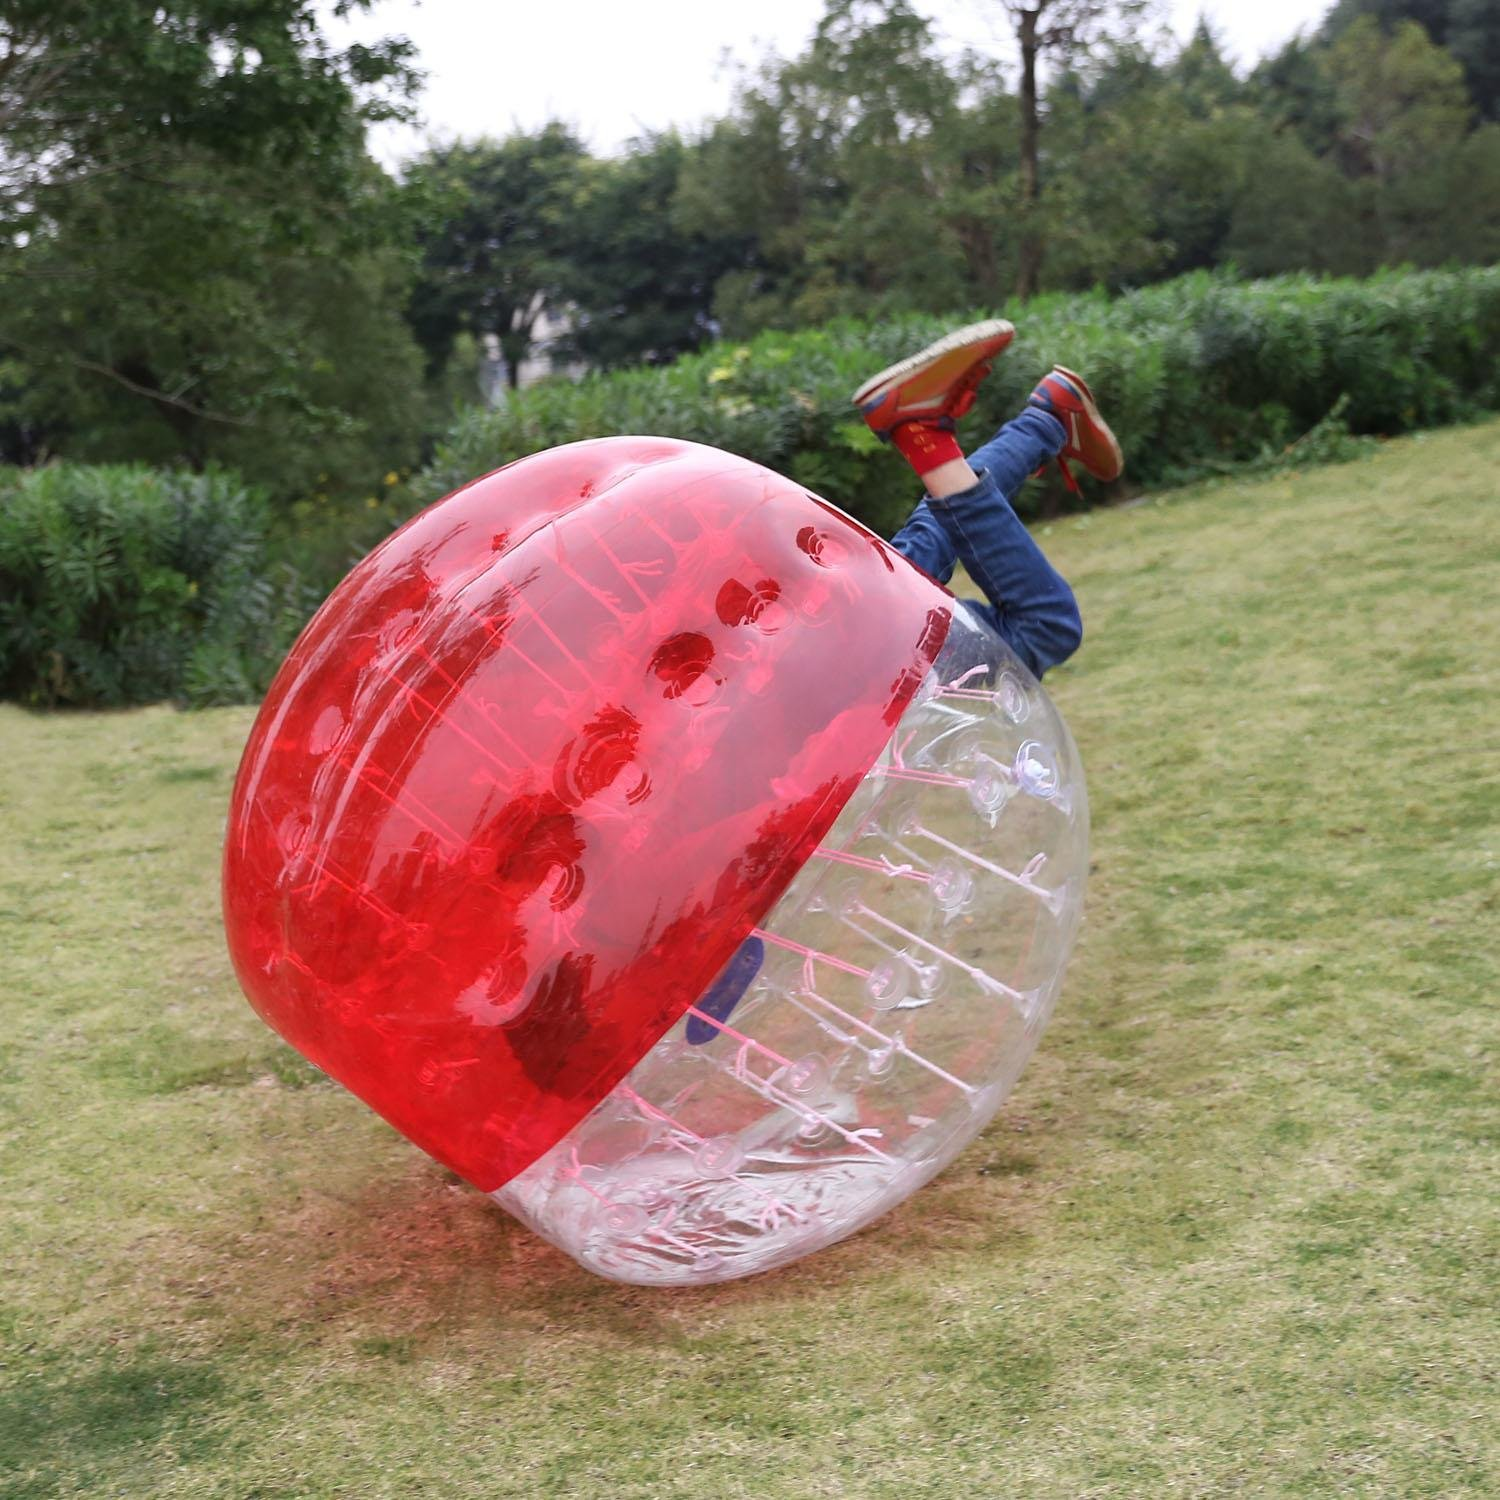 Mewalker Giant Inflatable Bumper Ball 0.8MM TPU Bubble Soccer Ball Zorb Ball Human Hamster Ball With 2 Handles 2 Adjustable Shoulder for Children Kids Adults Playground Outdoor (1.2M-1.5M,US STOCK) by Mewalker (Image #6)